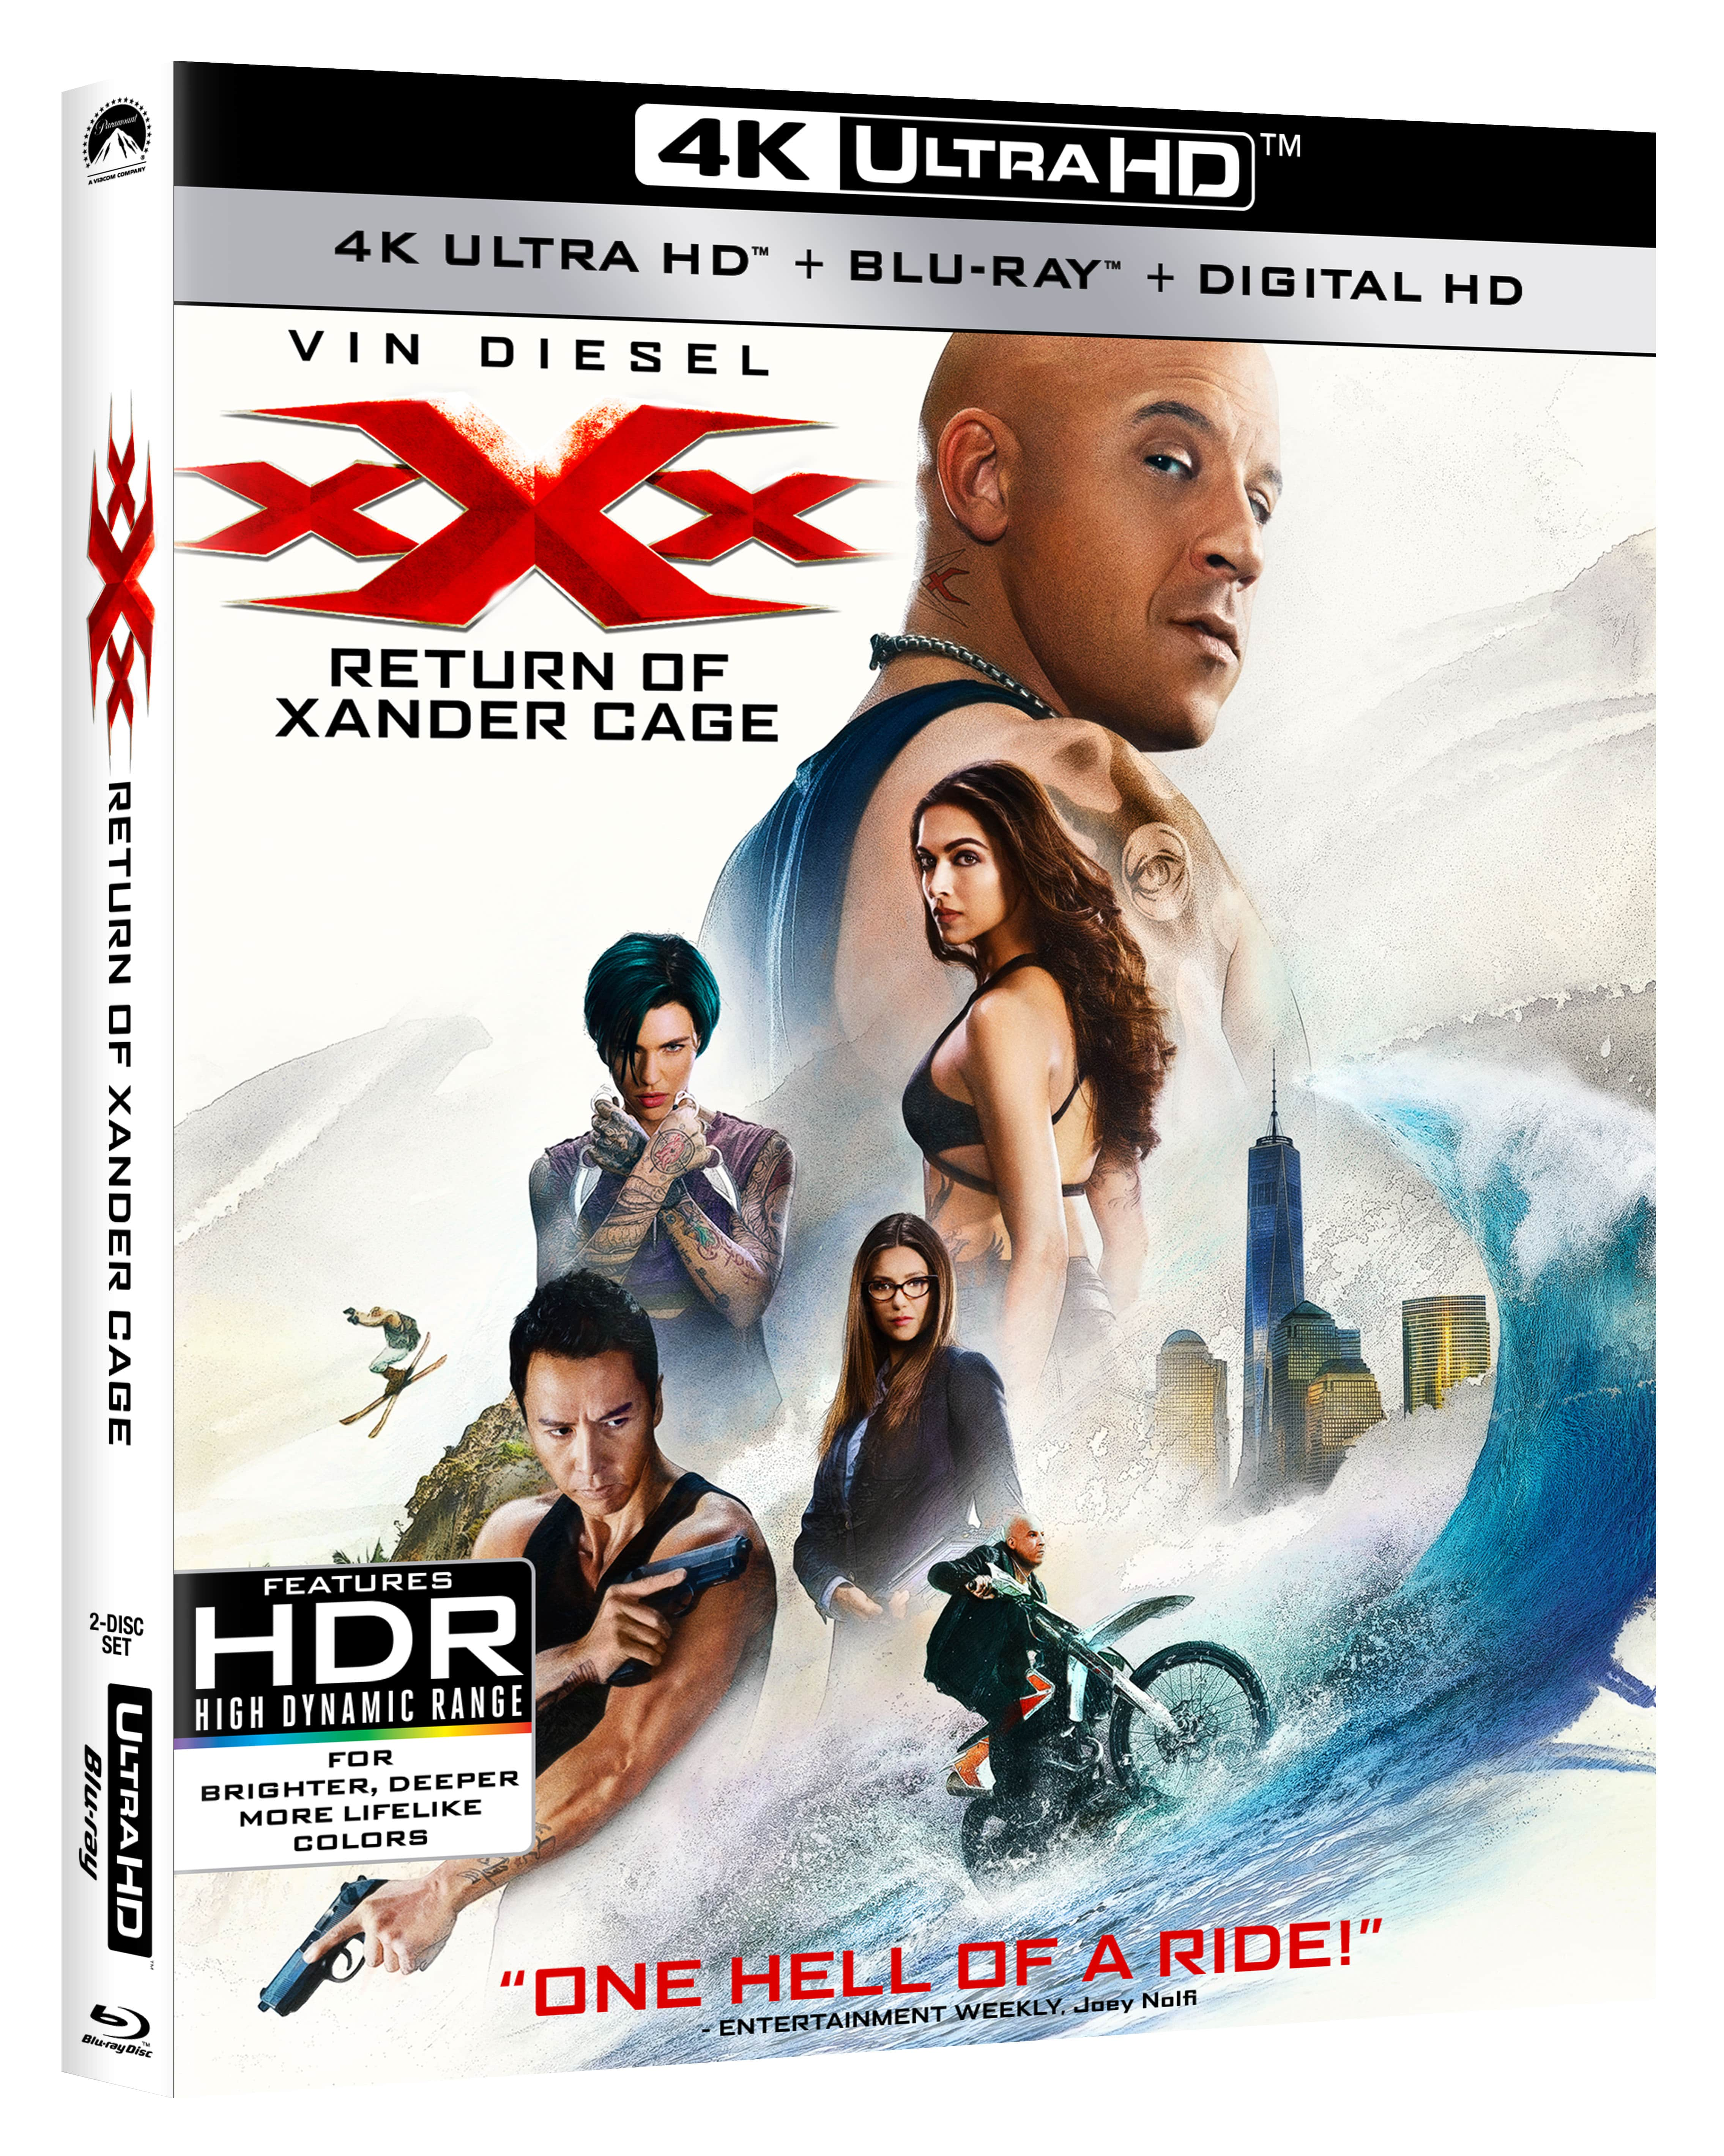 xXx: The Return of Xander Cage - Movie Review